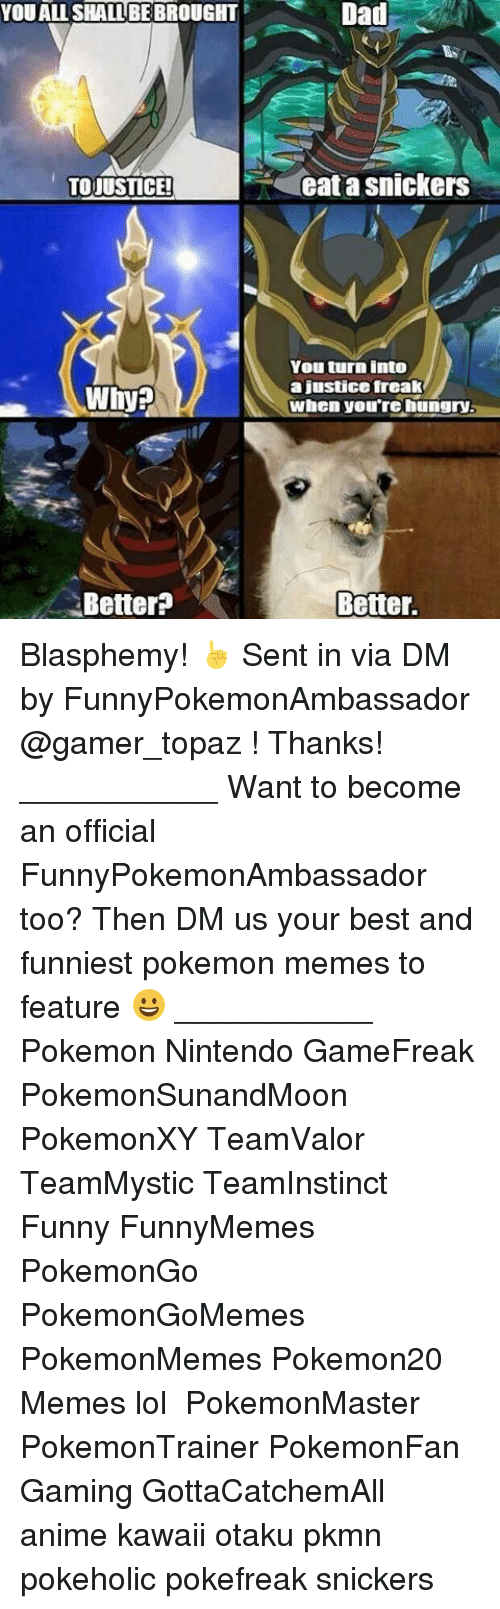 snicker: YOU ALL SHALL BEBROUGHT  TOJUSTICE!  Better?  Dad  eat a snickers  You turn into  a justice freak  when you're hungry.  Better. Blasphemy! ☝ Sent in via DM by FunnyPokemonAmbassador @gamer_topaz ! Thanks! ___________ Want to become an official FunnyPokemonAmbassador too? Then DM us your best and funniest pokemon memes to feature 😀 ___________ Pokemon Nintendo GameFreak PokemonSunandMoon PokemonXY TeamValor TeamMystic TeamInstinct Funny FunnyMemes PokemonGo PokemonGoMemes PokemonMemes Pokemon20 Memes lol ポケットモンスター PokemonMaster PokemonTrainer PokemonFan Gaming GottaCatchemAll anime kawaii otaku pkmn pokeholic pokefreak snickers